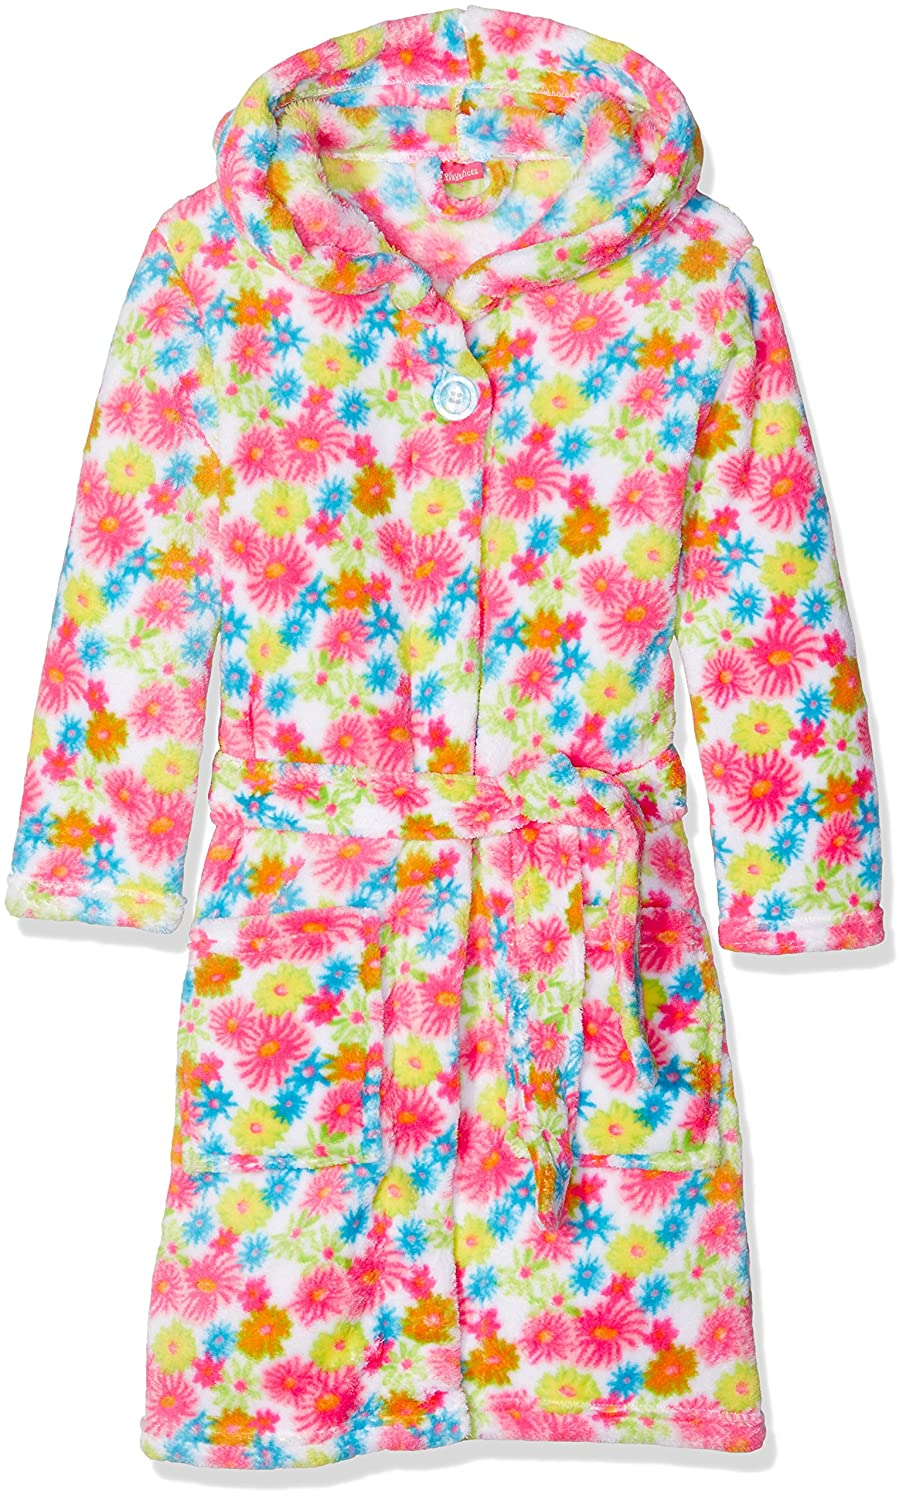 Playshoes Girl's Fleece Bathrobe Allover Flowers Dressing Gown 340133